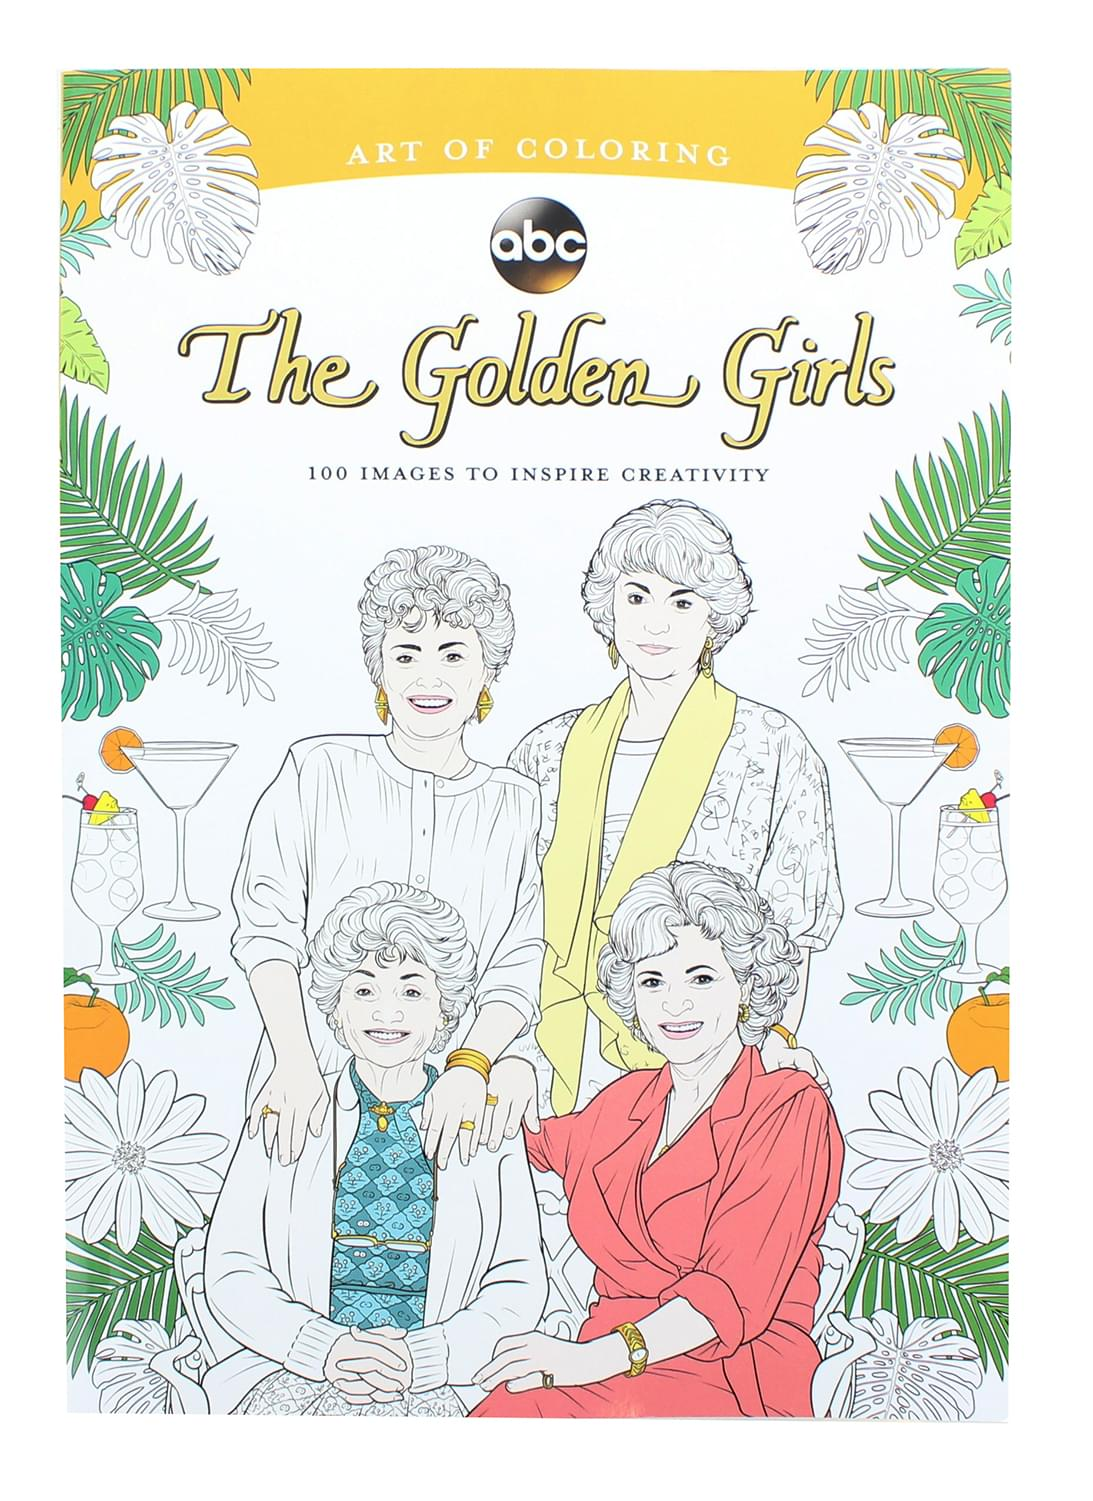 The Golden Girls Art of Coloring Book | 100 Images to Inspire Creativity